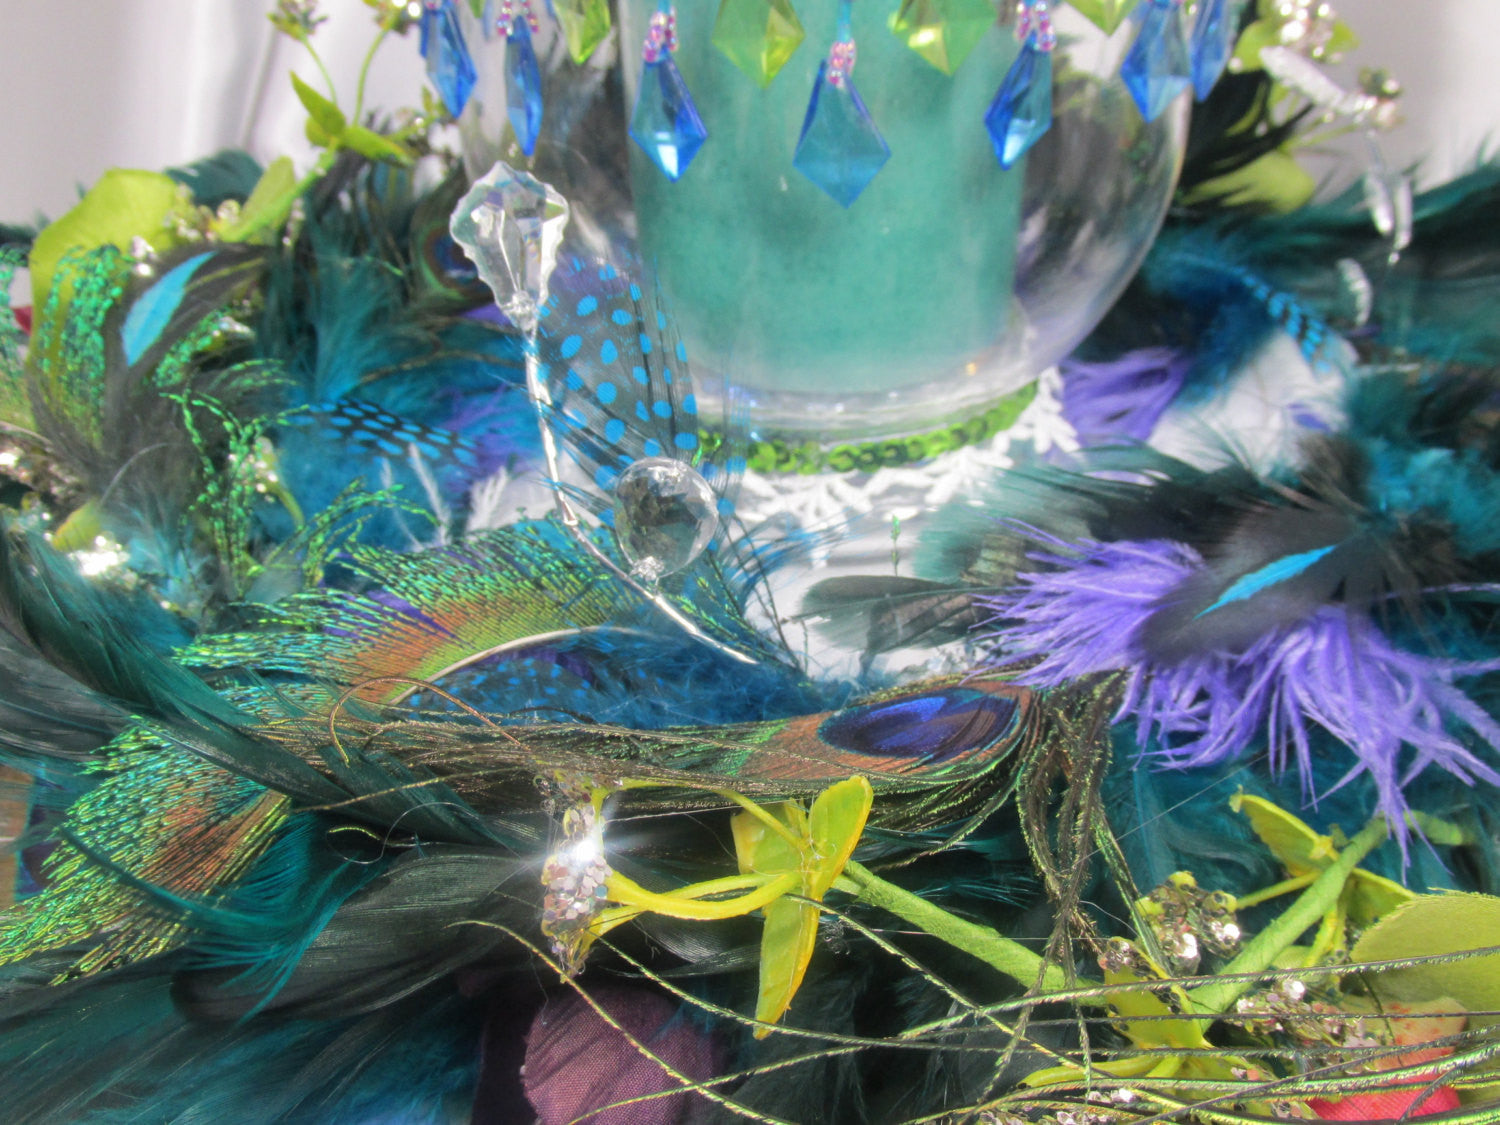 Peacock Wreath and Hurricane Candle Holder Centerpiece Set - Odyssey Creations